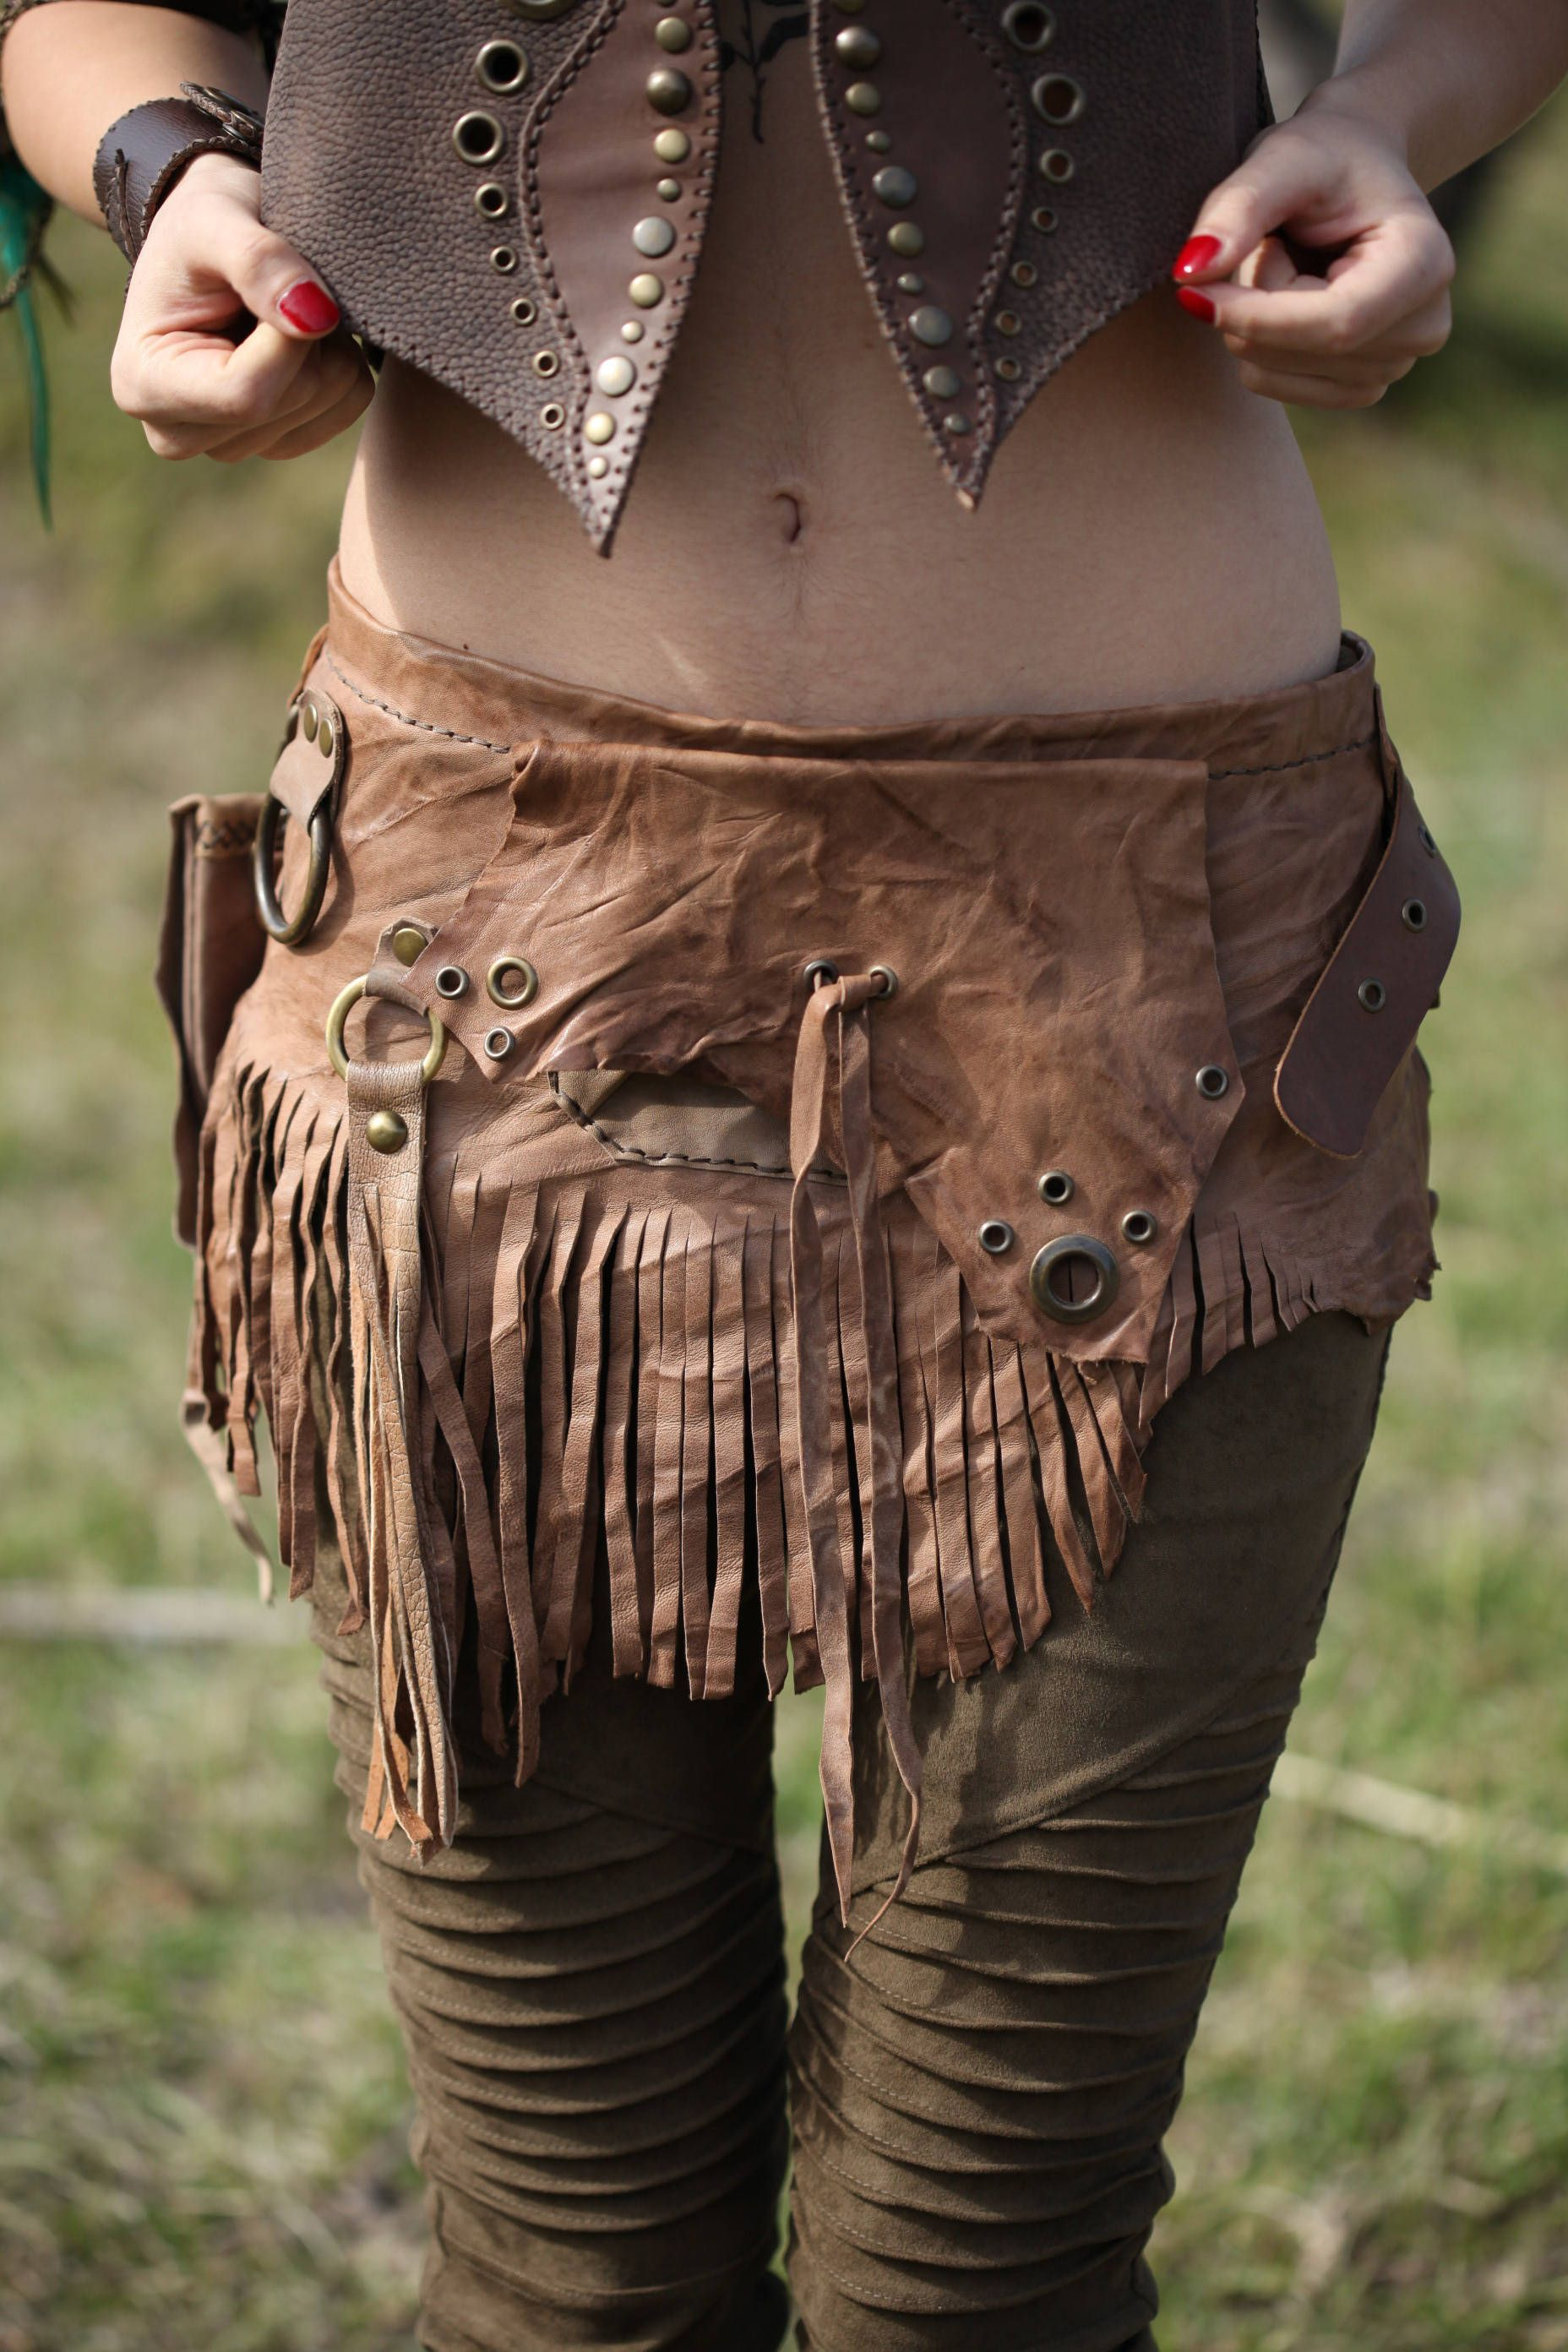 bad022b375 Leather Bustle Skirt - Tribal Fringe Hip Belt - Belly Dance Wasteland Wrap  Skirt - Native American Skirt - Festival Post Apocalyptic Belt by ...